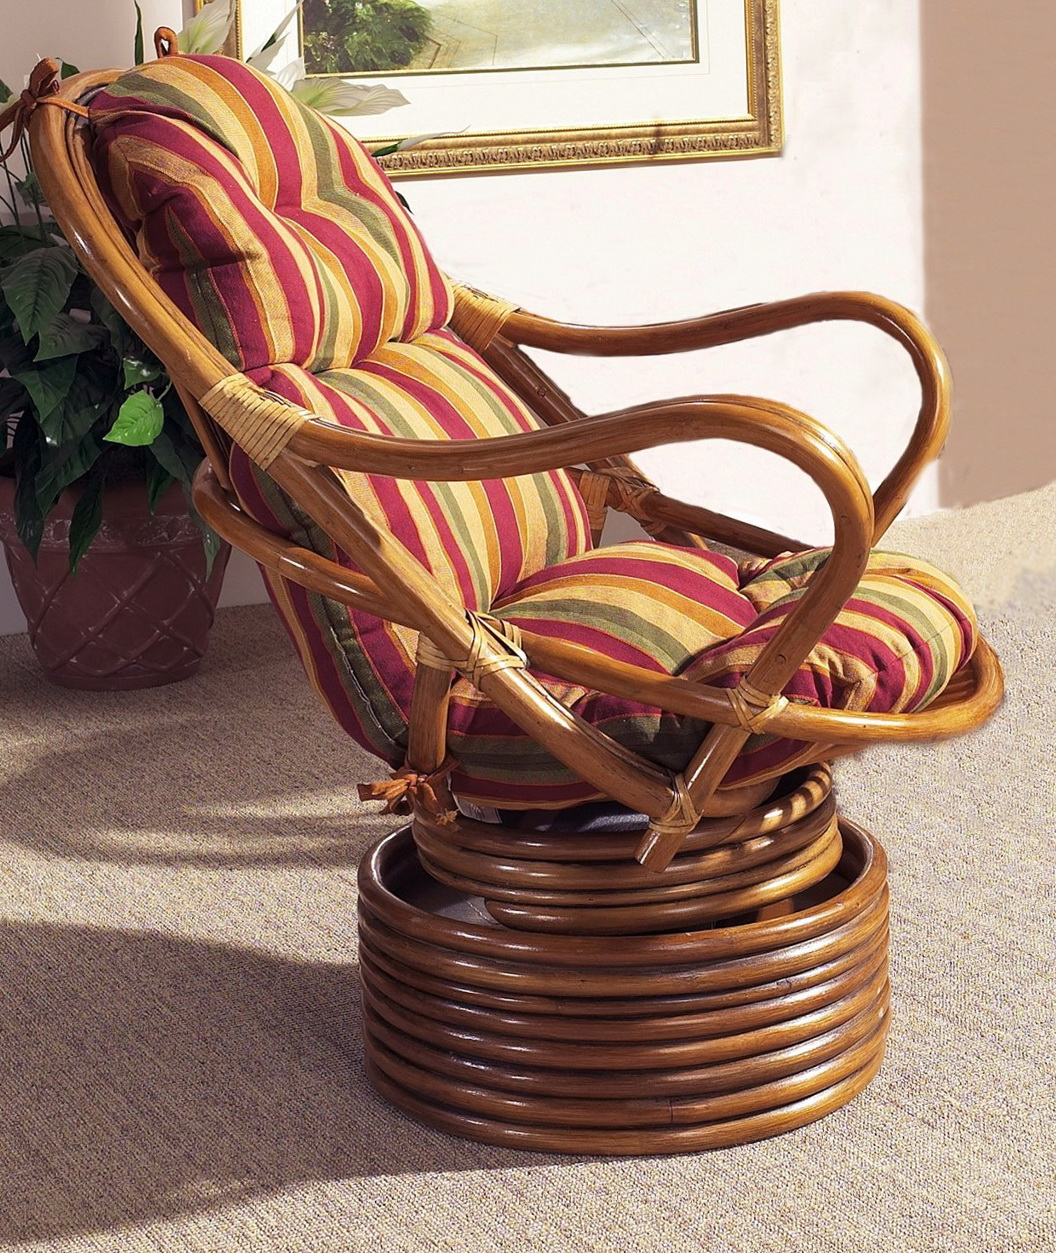 Delicieux Rattan Swivel Chair Cushions